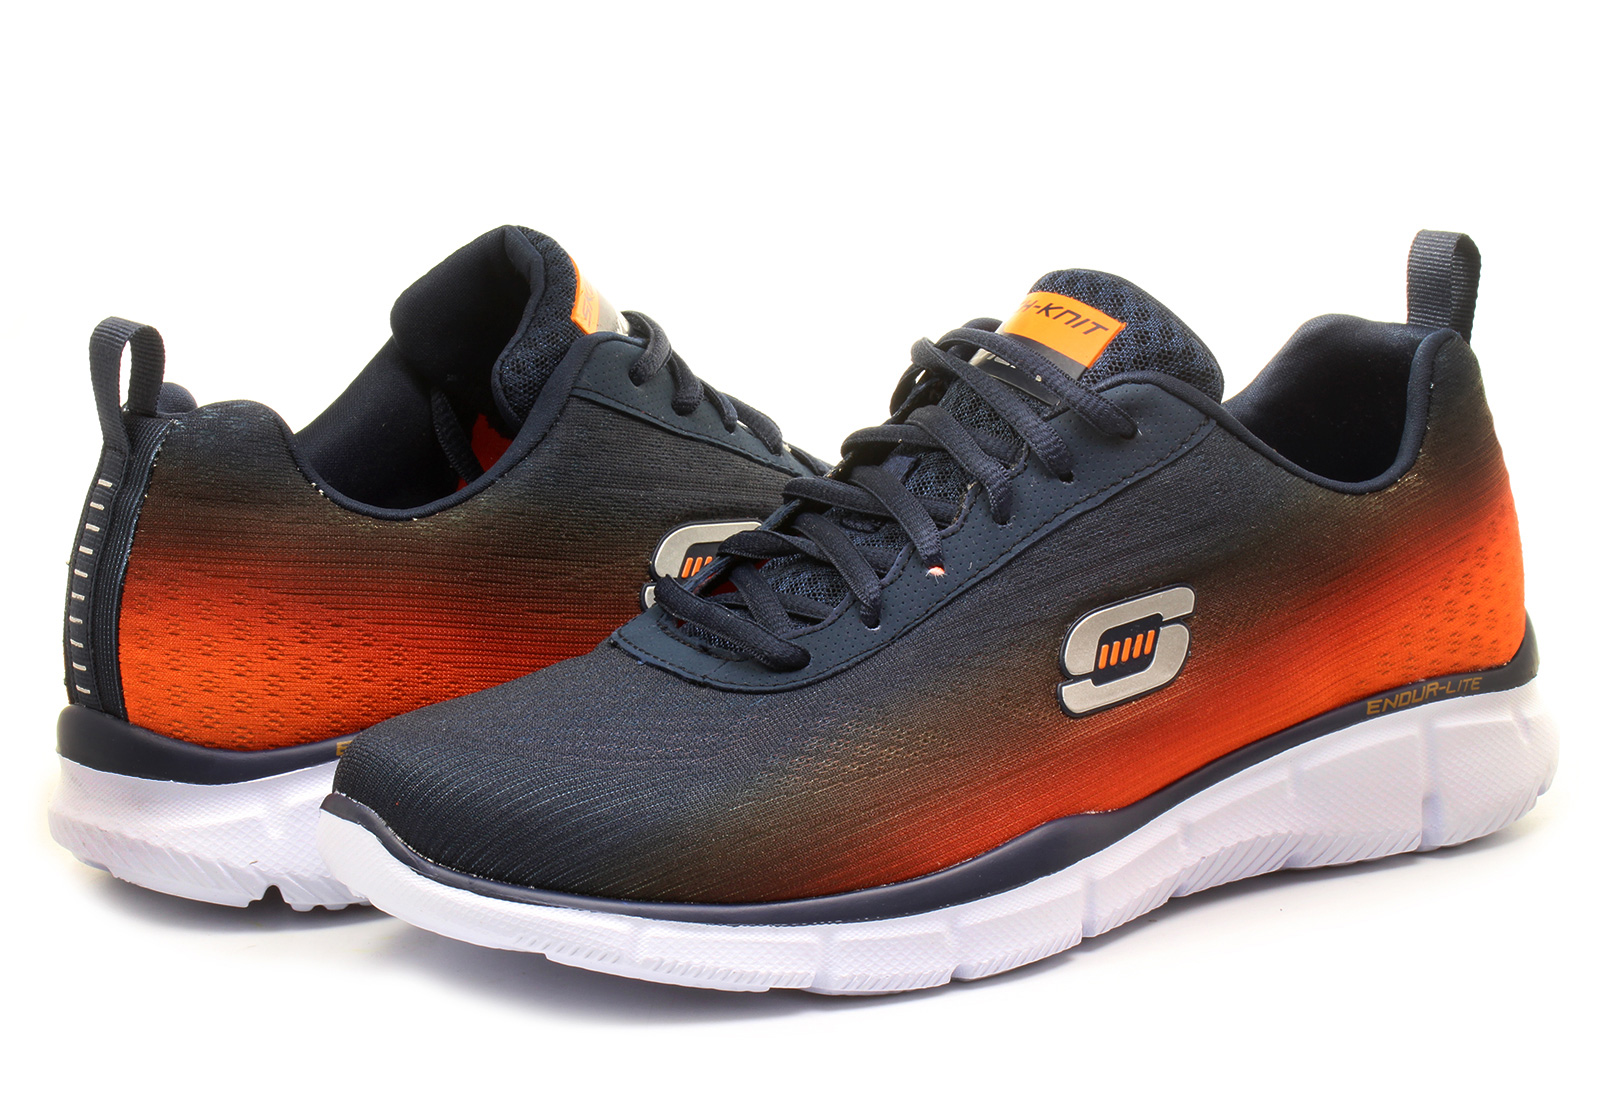 Skechers Shoes Velcro Blue Orange